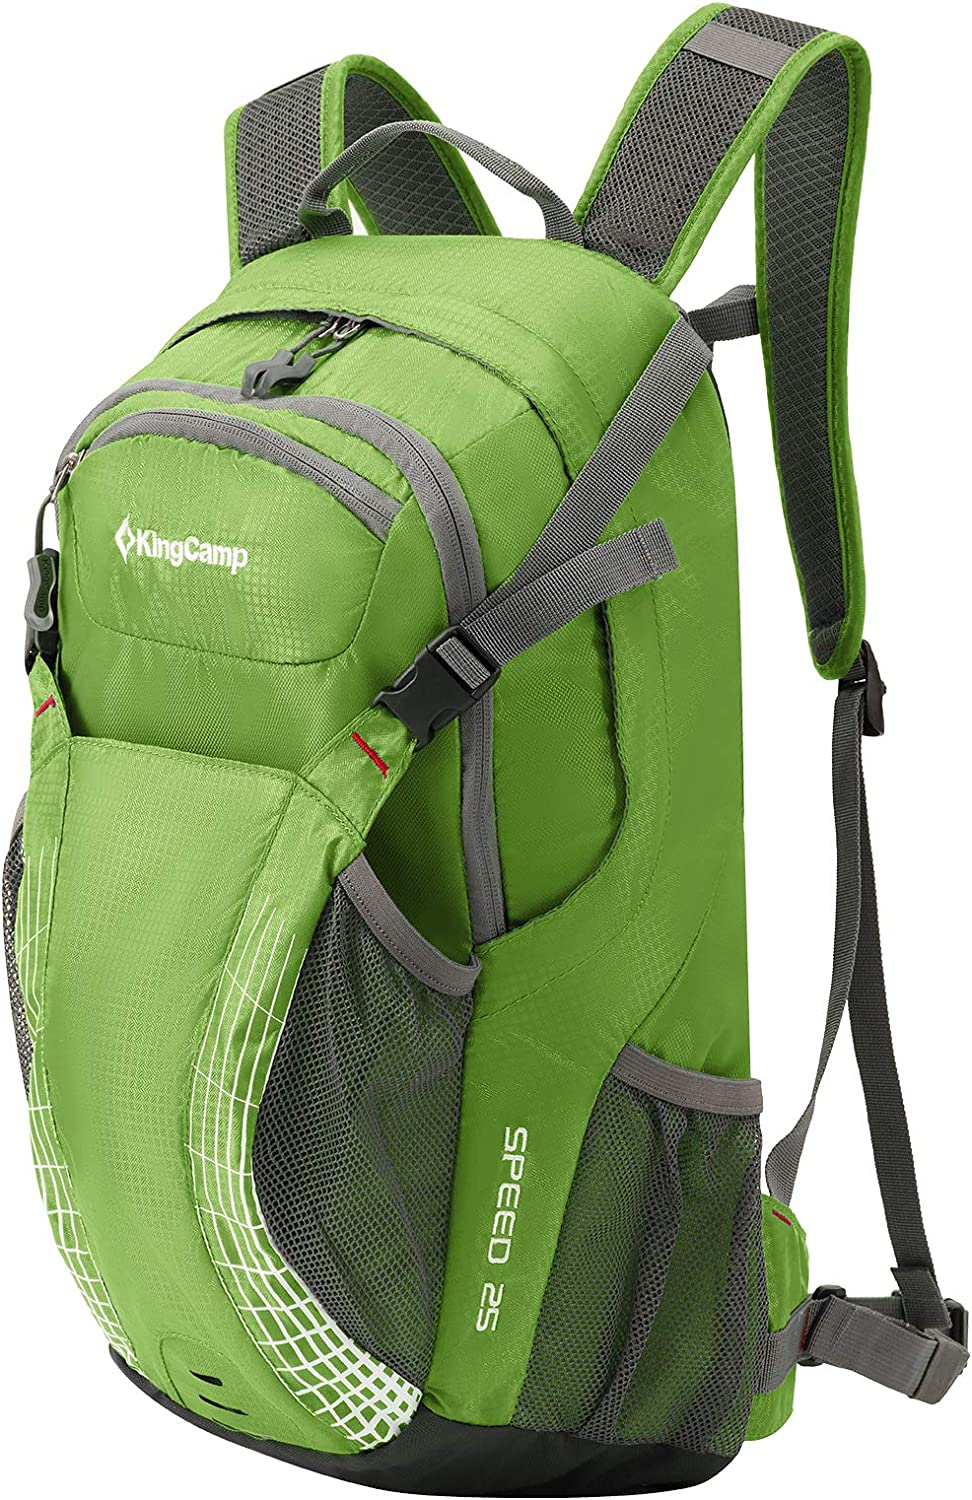 KingCamp 25L Cycling Backpack With Max 63% OFF Selling and selling Rain Helmet Cover for Storage